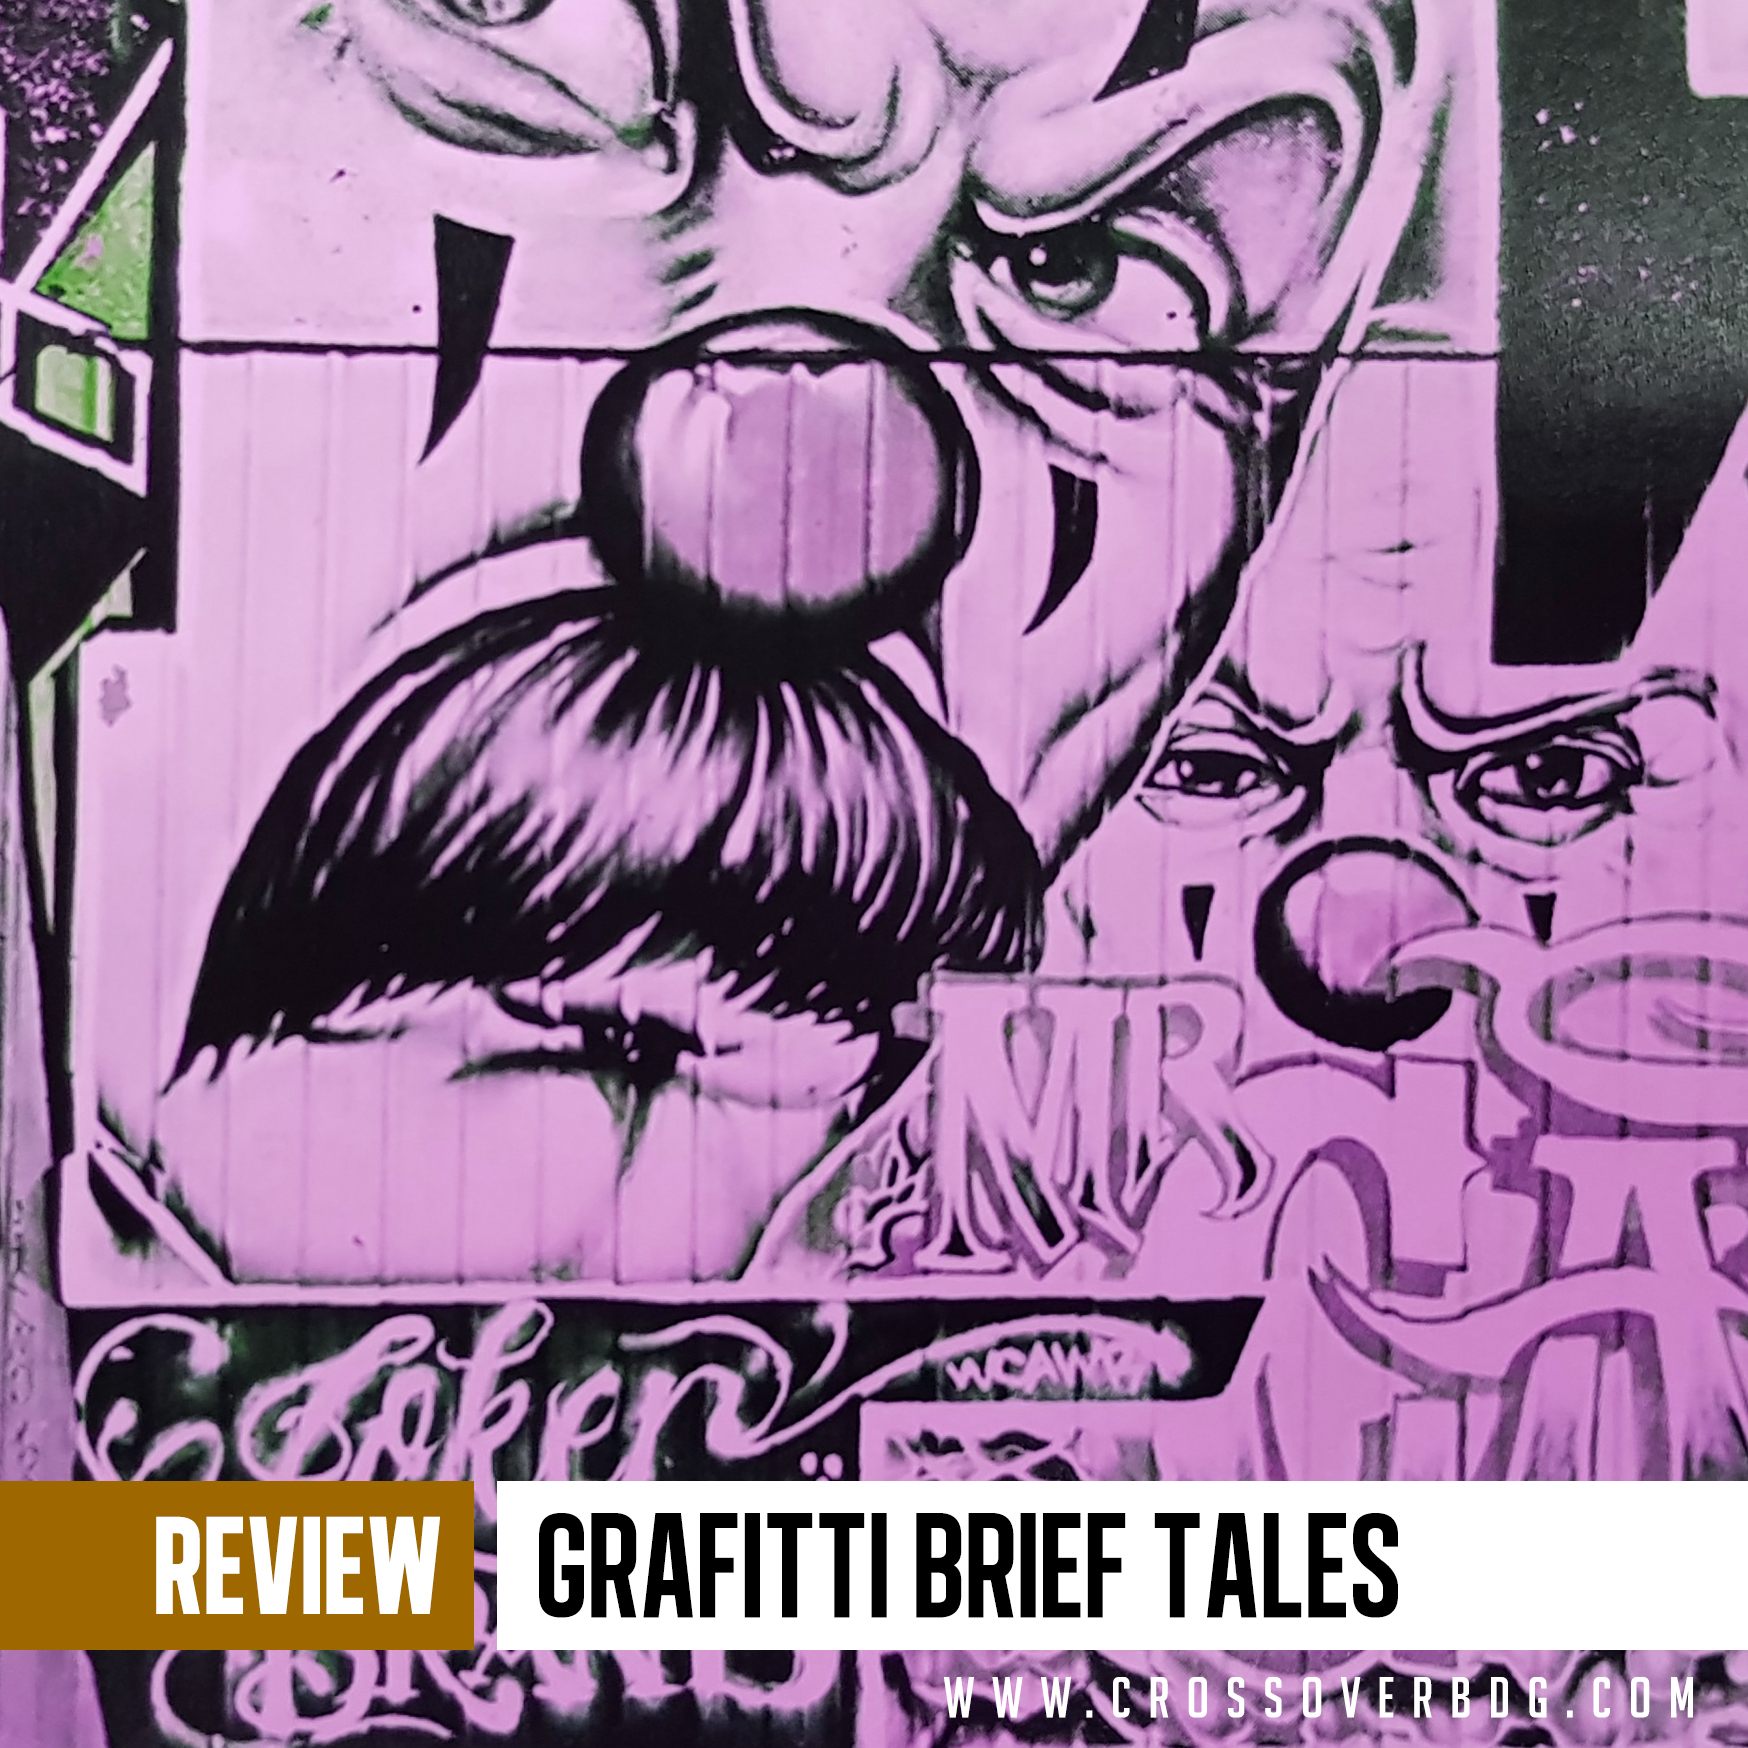 REVIEW : A Grafitti Brief tales image